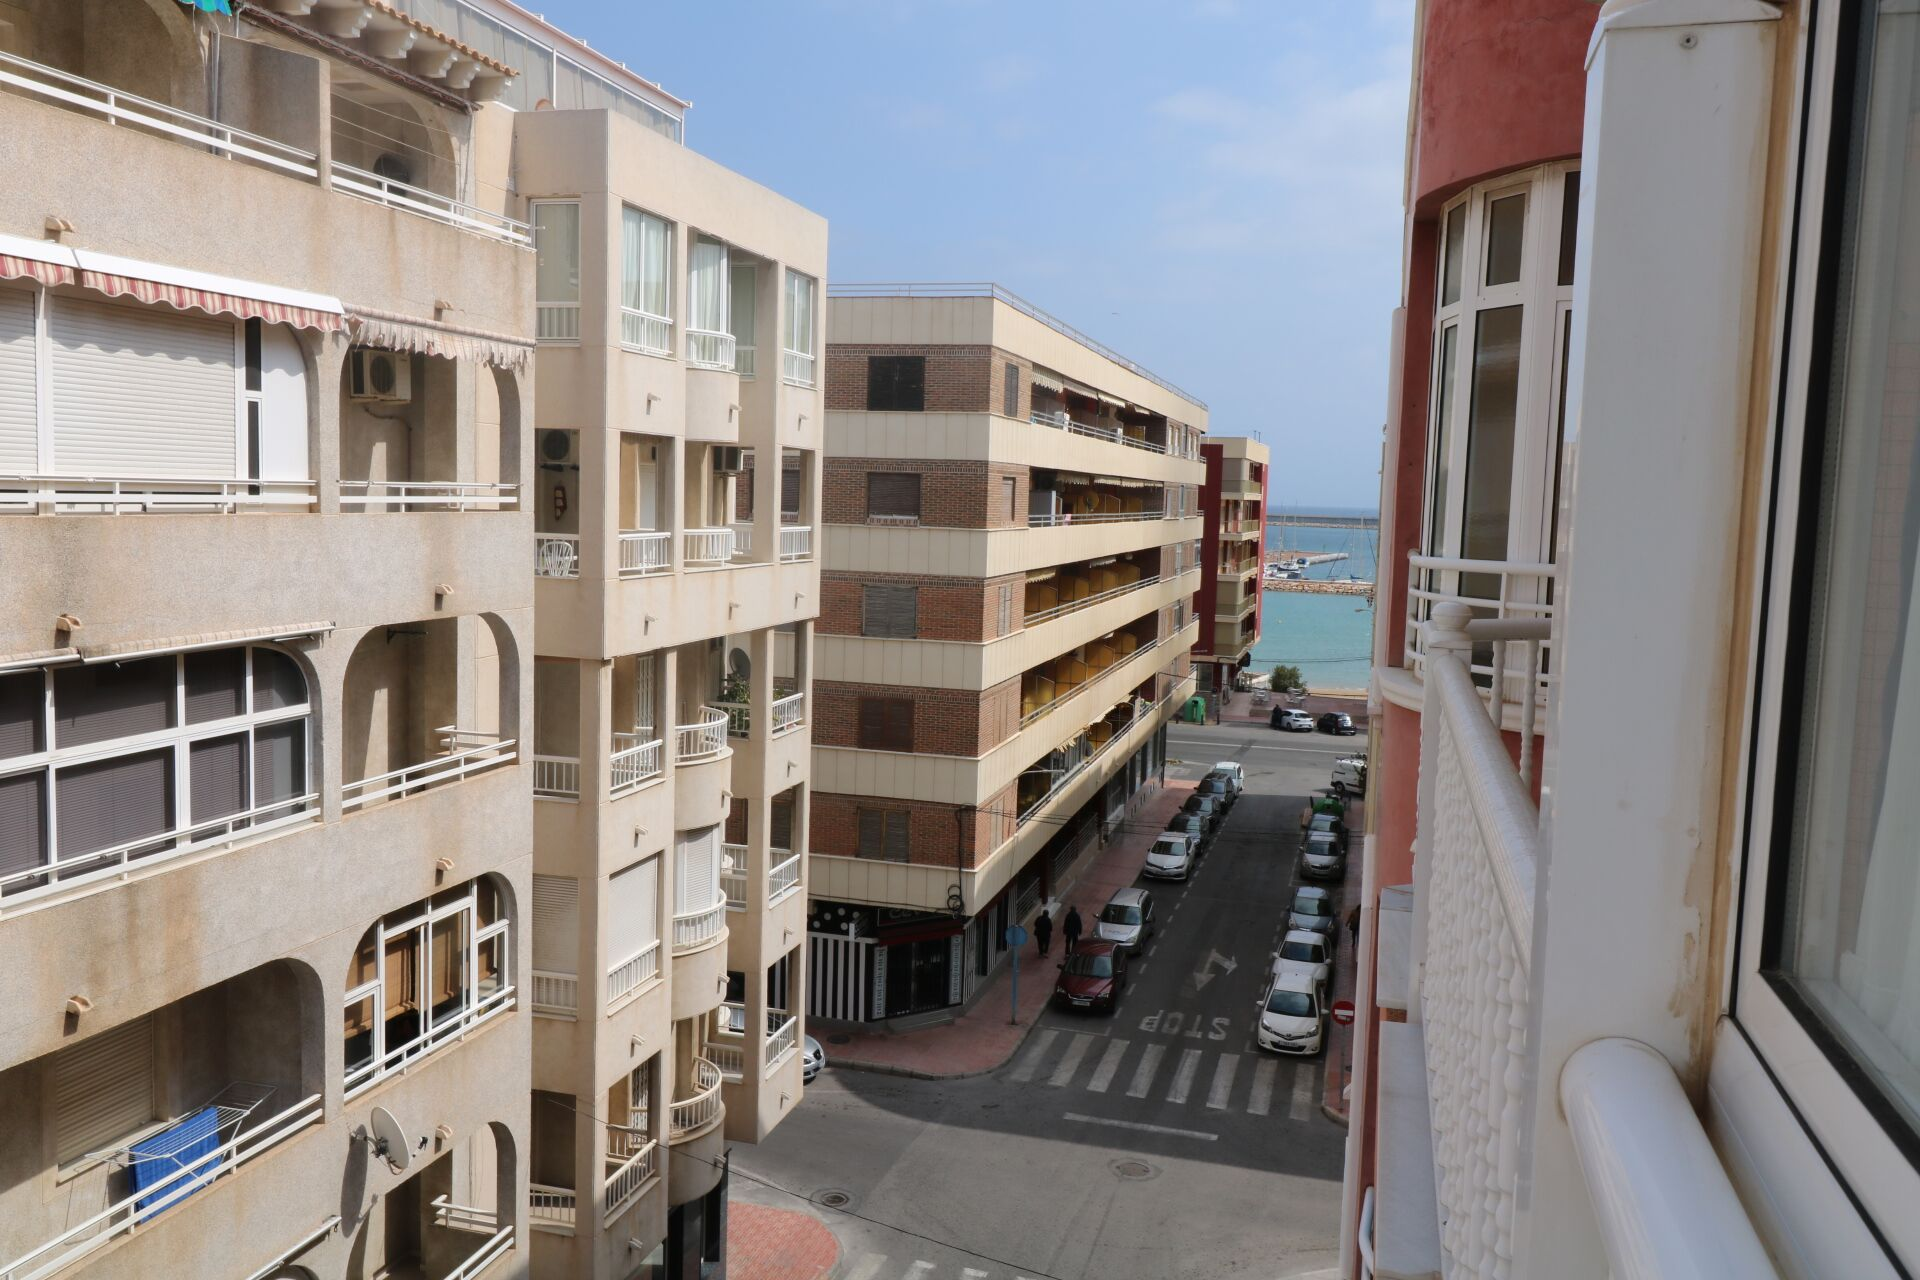 SPAIN COSTA BLANCA – TORREVIEJA, APARTMENT OF 3 BEDROOMS AND 2 BATHROOMS VERY CLOSE TO THE BEACH